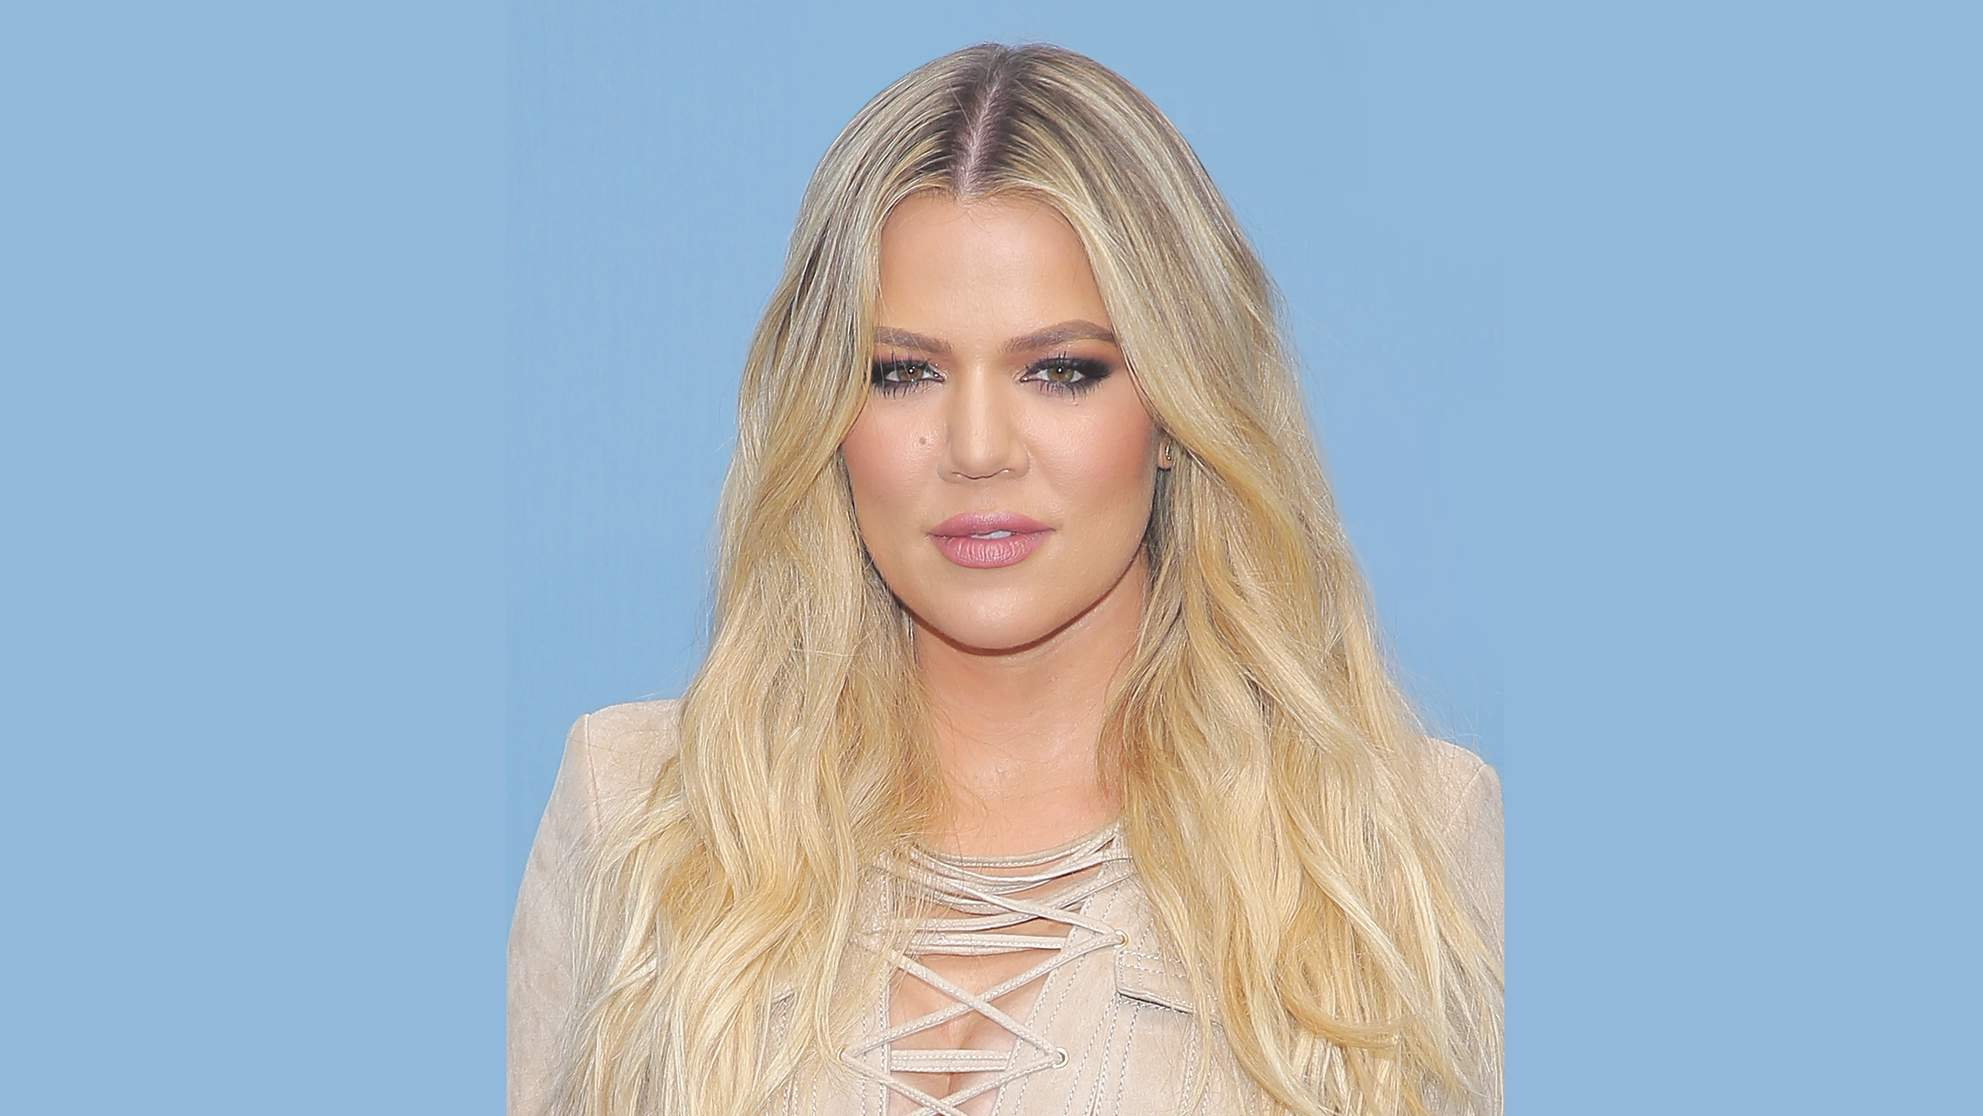 Khloé Kardashian Shares Daughter's Name Days After Giving Birth Amid Cheating Scandal